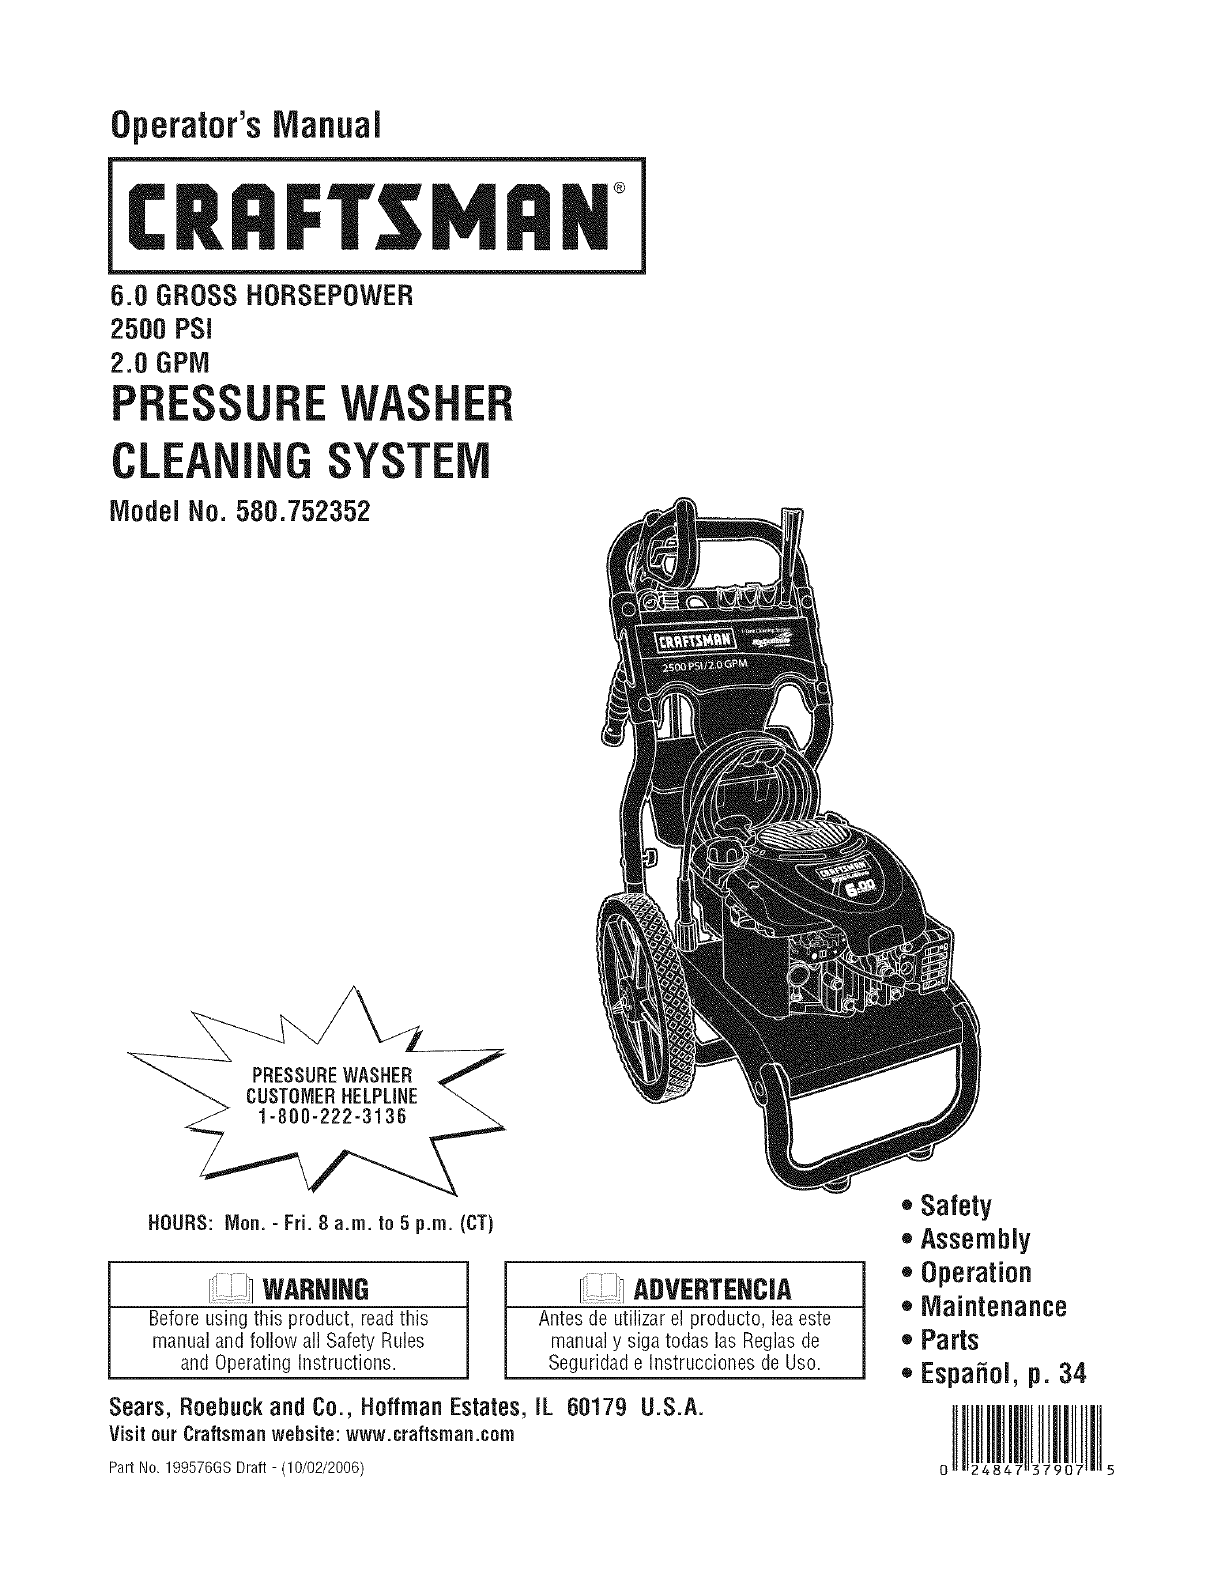 Craftsman 580752352 User Manual Pressure Washer Manuals And Guides Wiring Diagram For L0612393